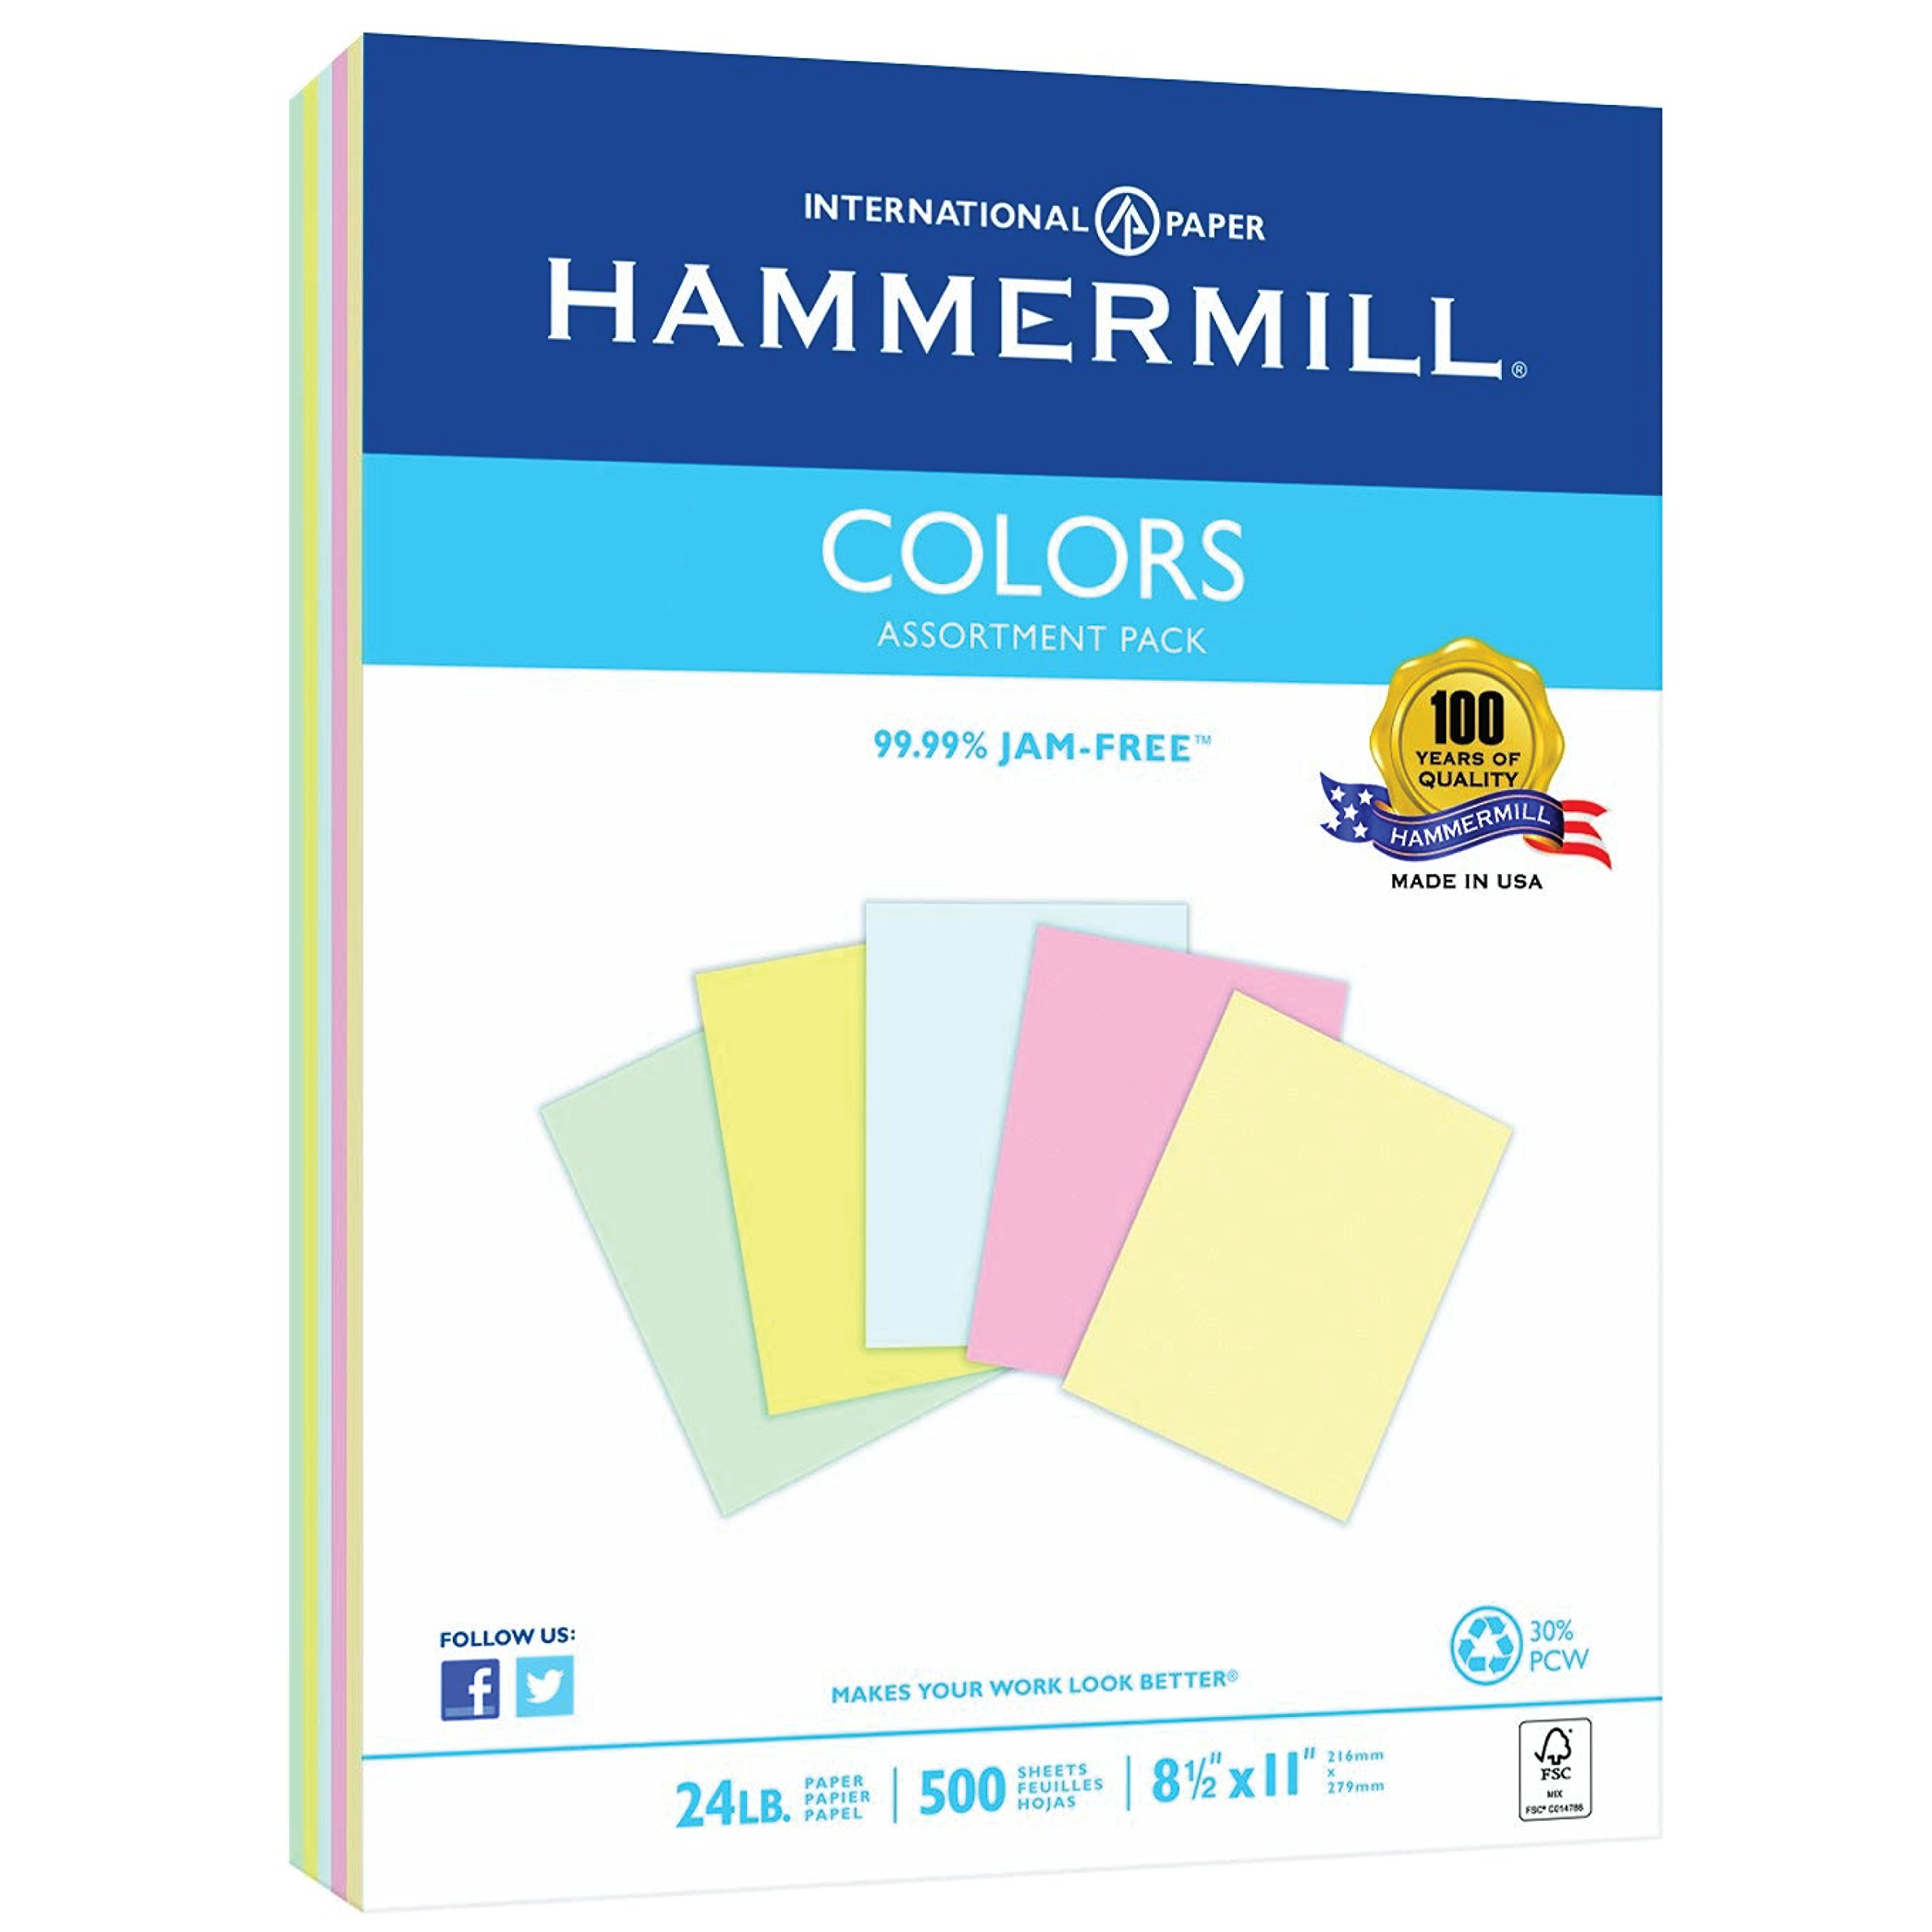 Hammermill Colored Paper, Assorted Printer Paper, Blue, Canary, Pink, Green, Ivory, 24lb, 8.5x11 Paper, Letter Size, 500 Sheets/1 Ream, Pastel Paper, Colorful Paper (102640R)